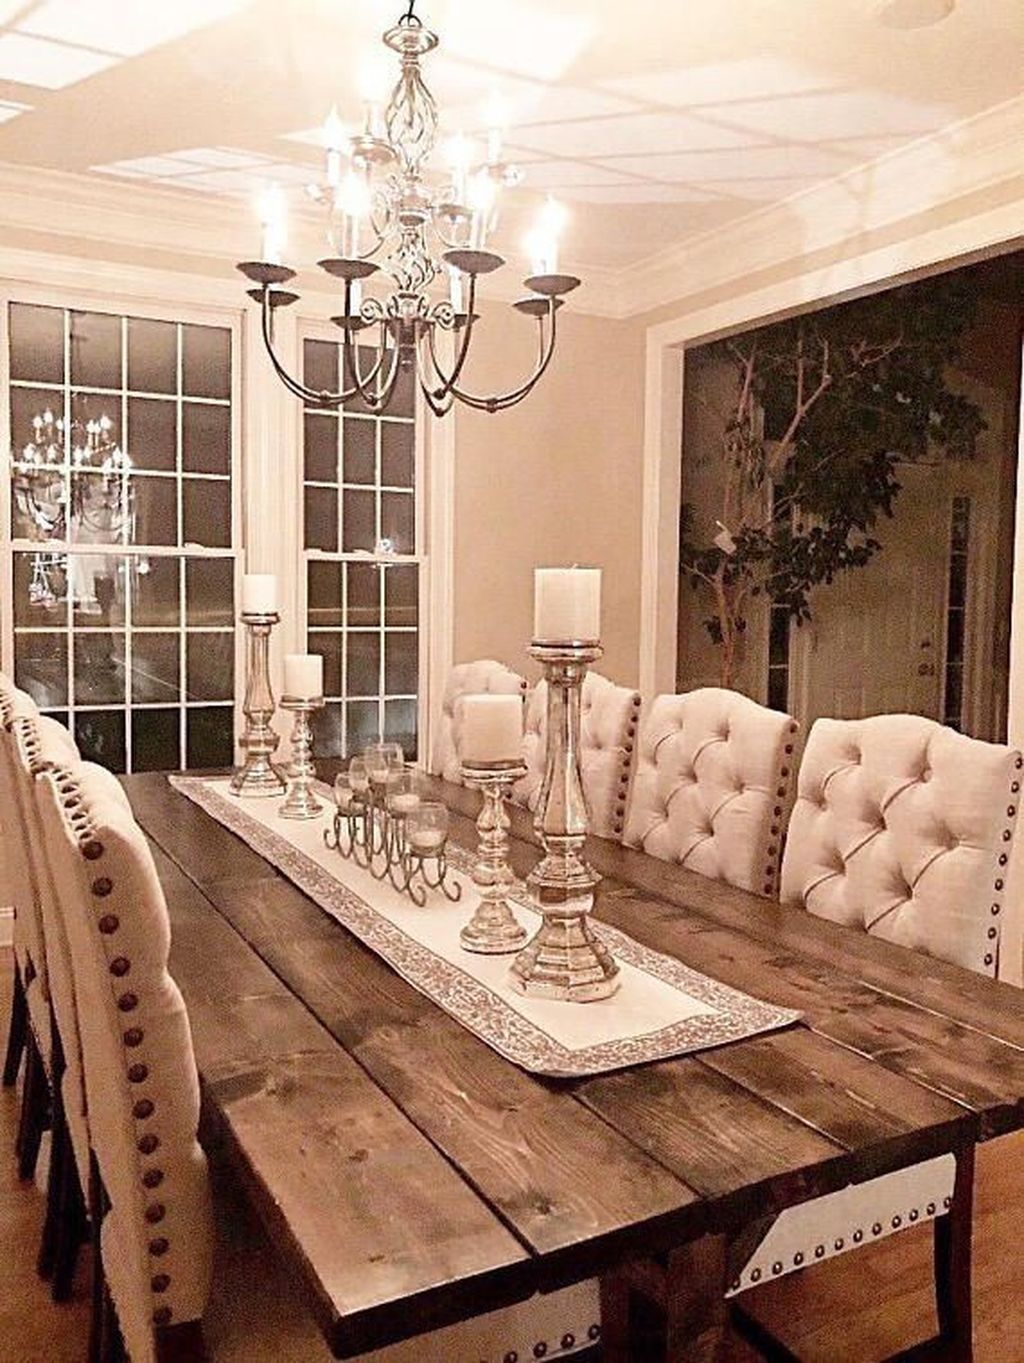 Awesome 49 Cozy Rustic Farmhouse Dining Room Table Ideas More At Https Tren Farm Table Dining Room Farmhouse Dining Rooms Decor Rustic Farmhouse Living Room